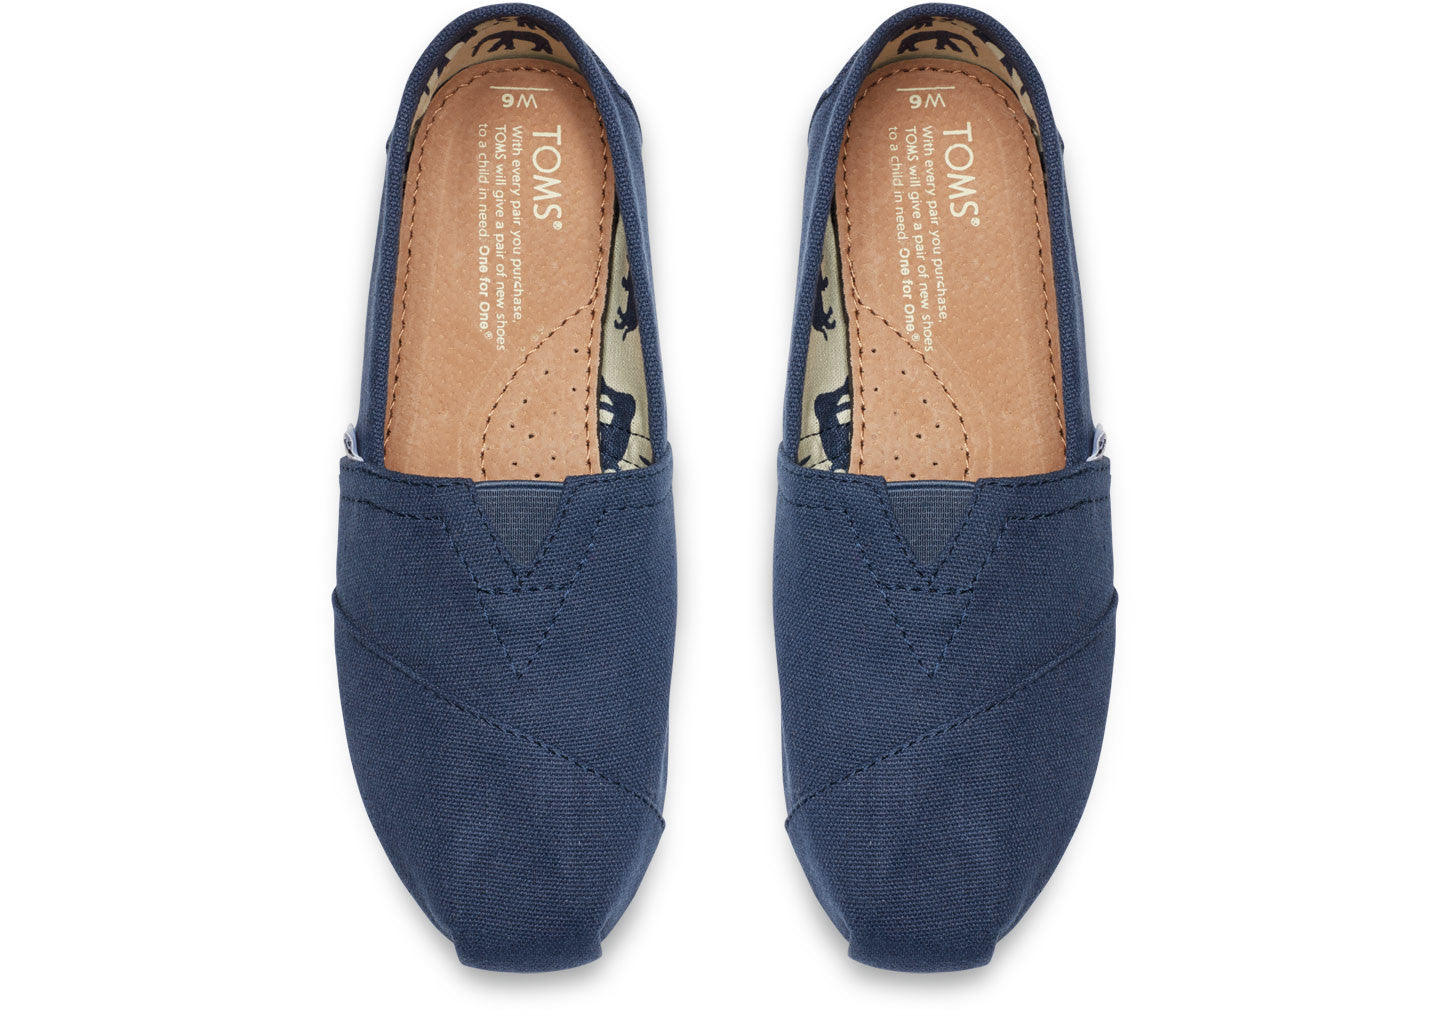 552497cdbf9d Toms Women s Navy Classic Alpargata - Foot Paths Shoes